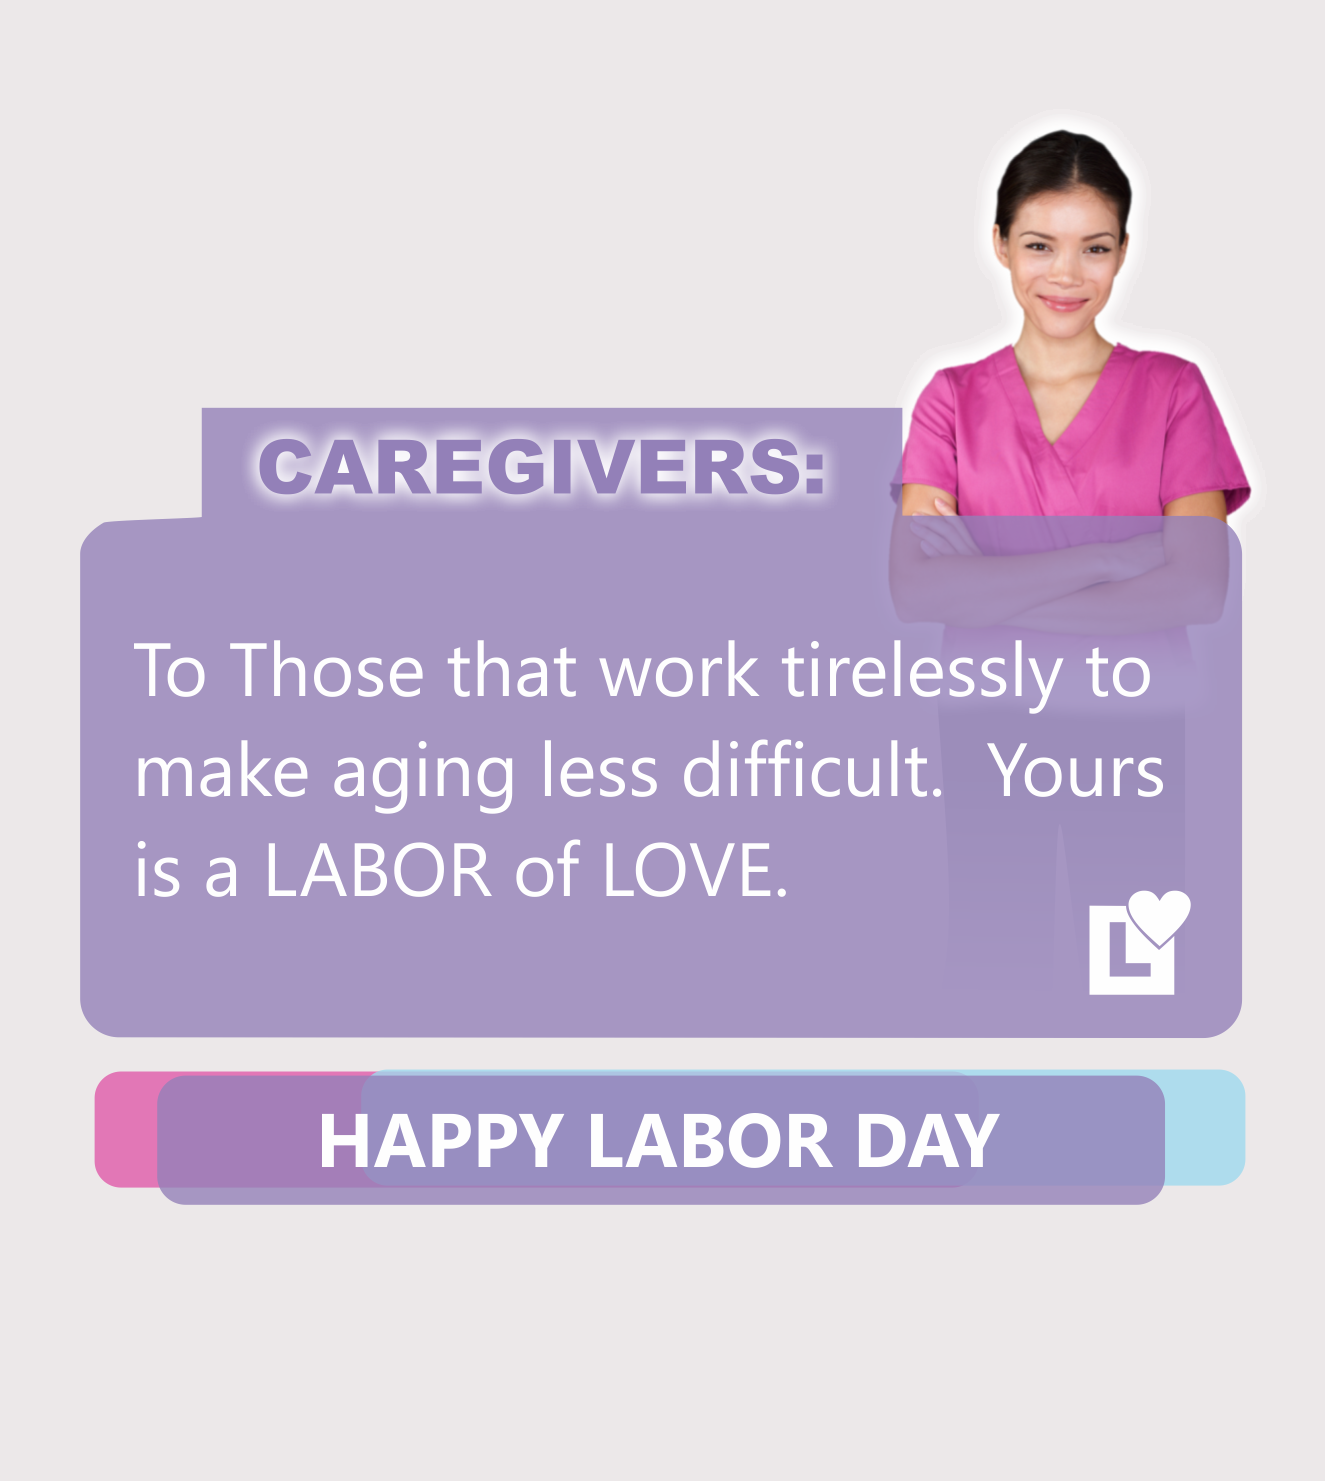 Happy Labor Day Caregivers